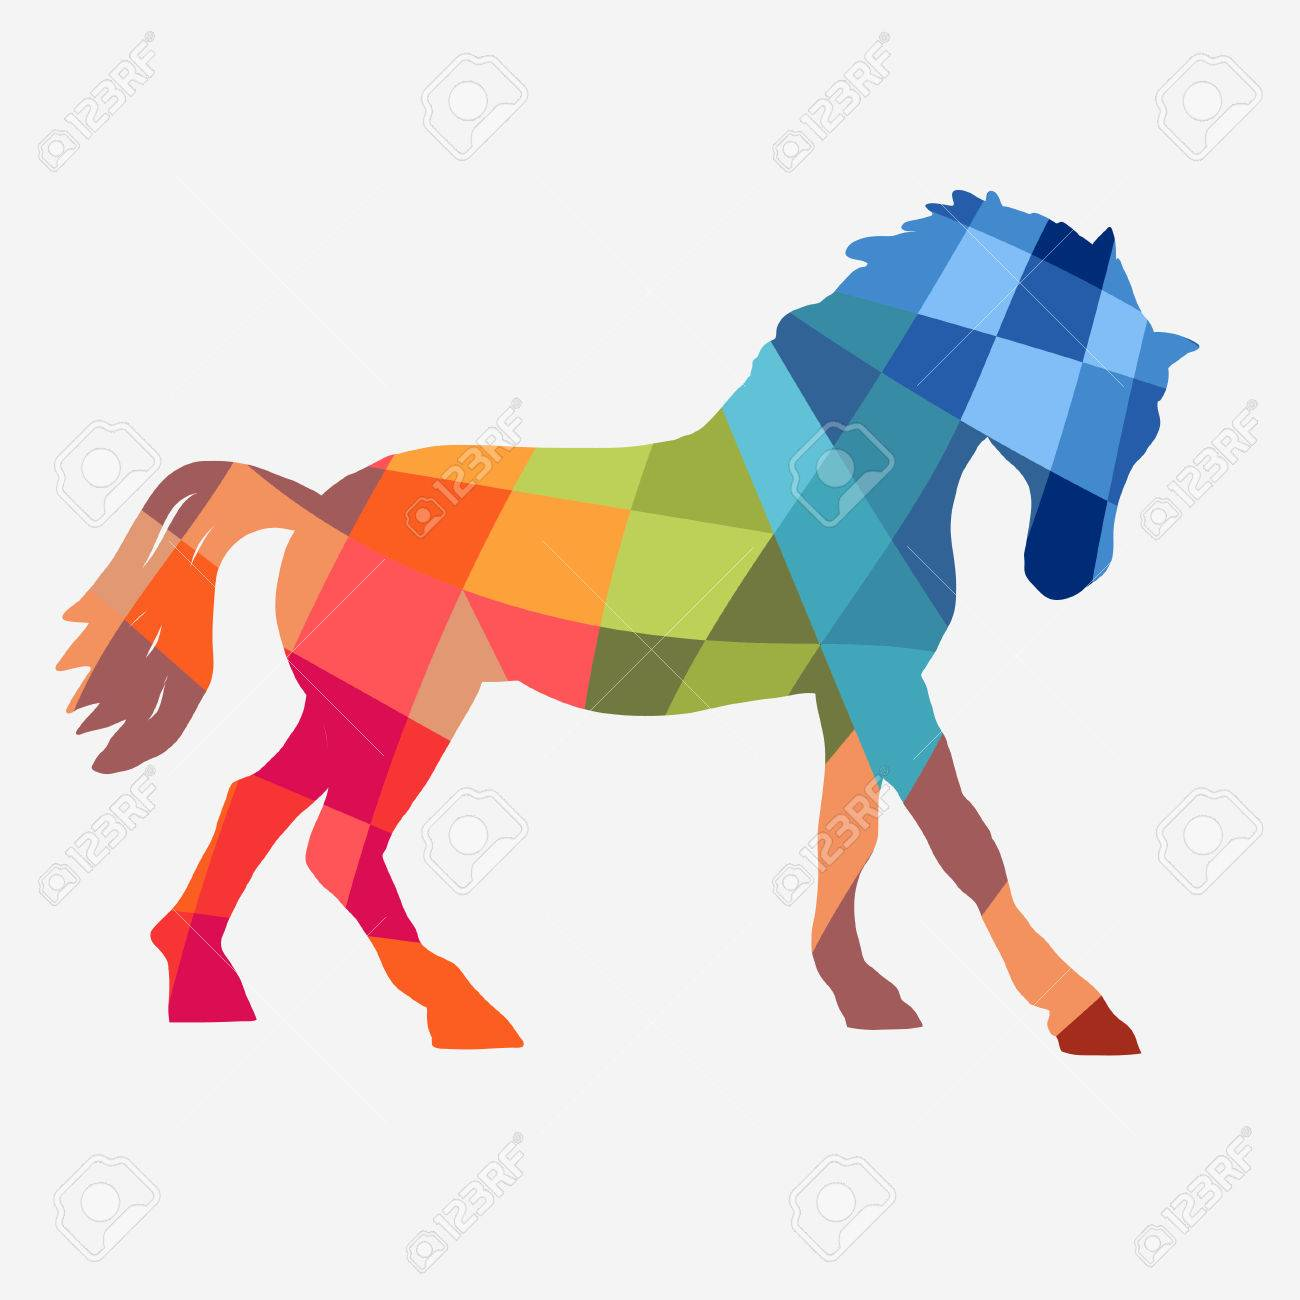 Horse Profile Geometric Shapes Design On A White Background Royalty Free Cliparts Vectors And Stock Illustration Image 70737145